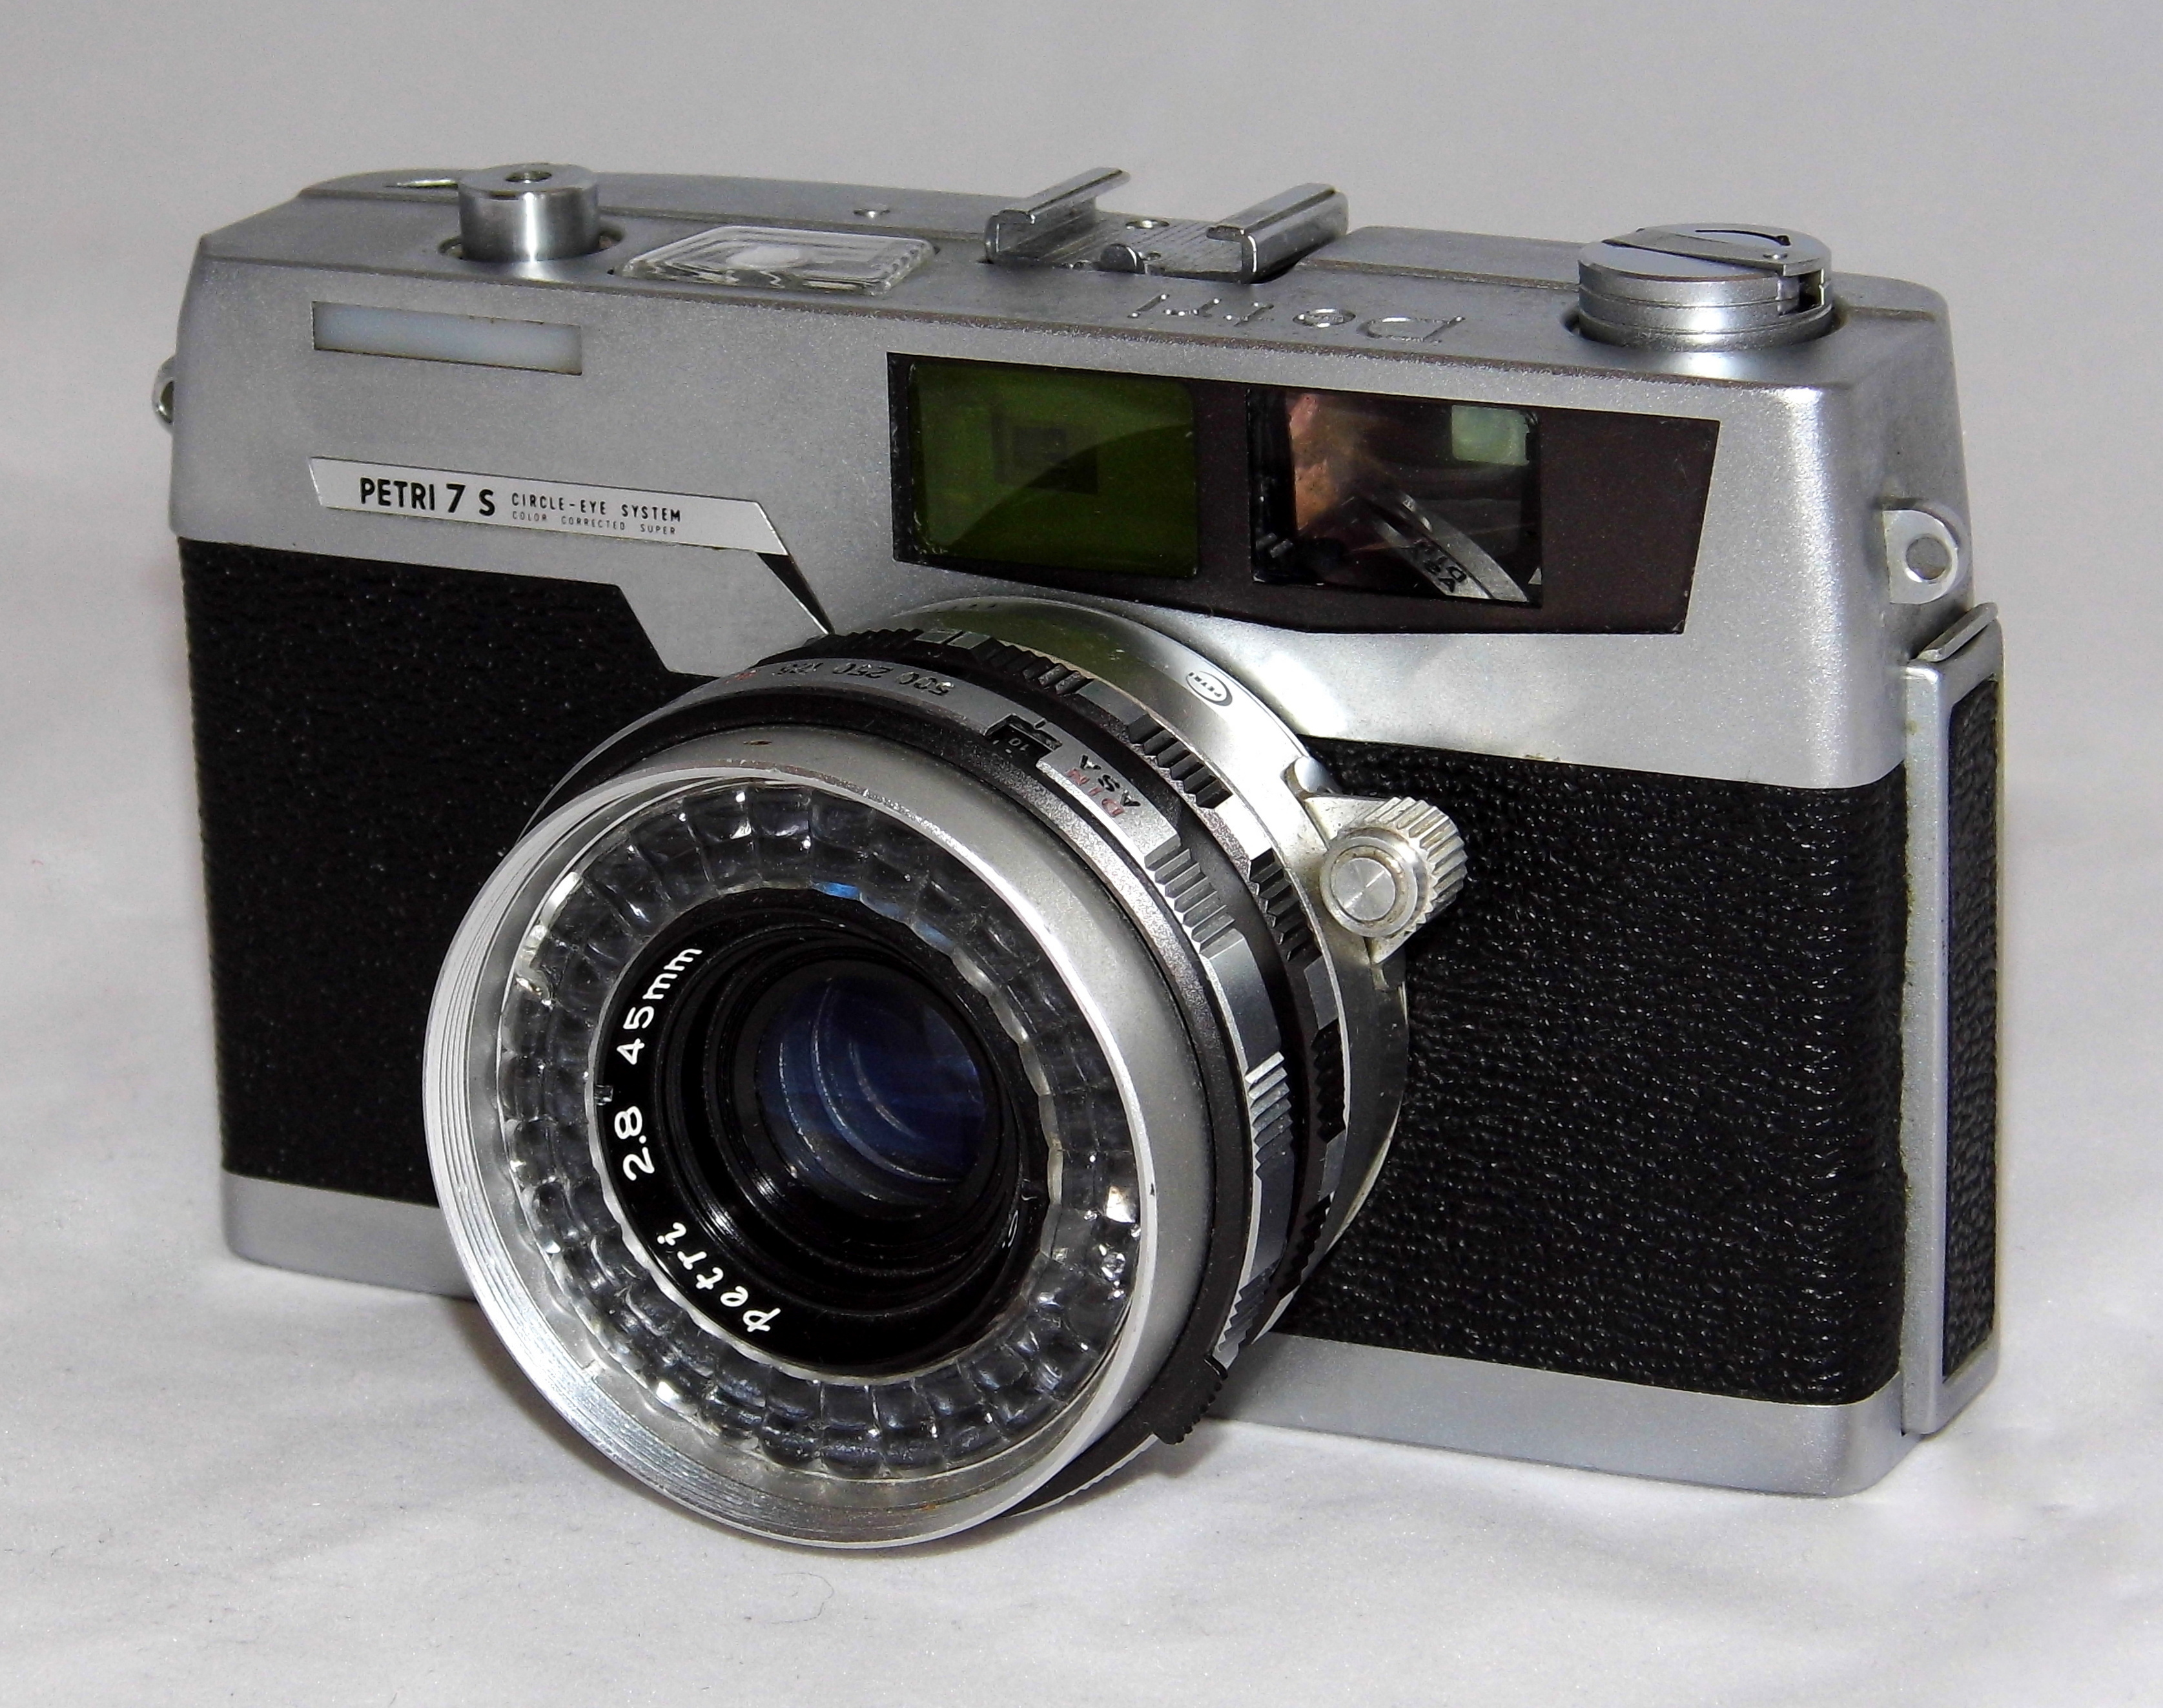 Vintage Petri 7s 35mm Film Rangefinder Camera, ATL (Around The Lens) Selenium Cell Light Meter, f2.8 Lens, Made In Japan, Produced From 1963 - 1973 (17220534782)